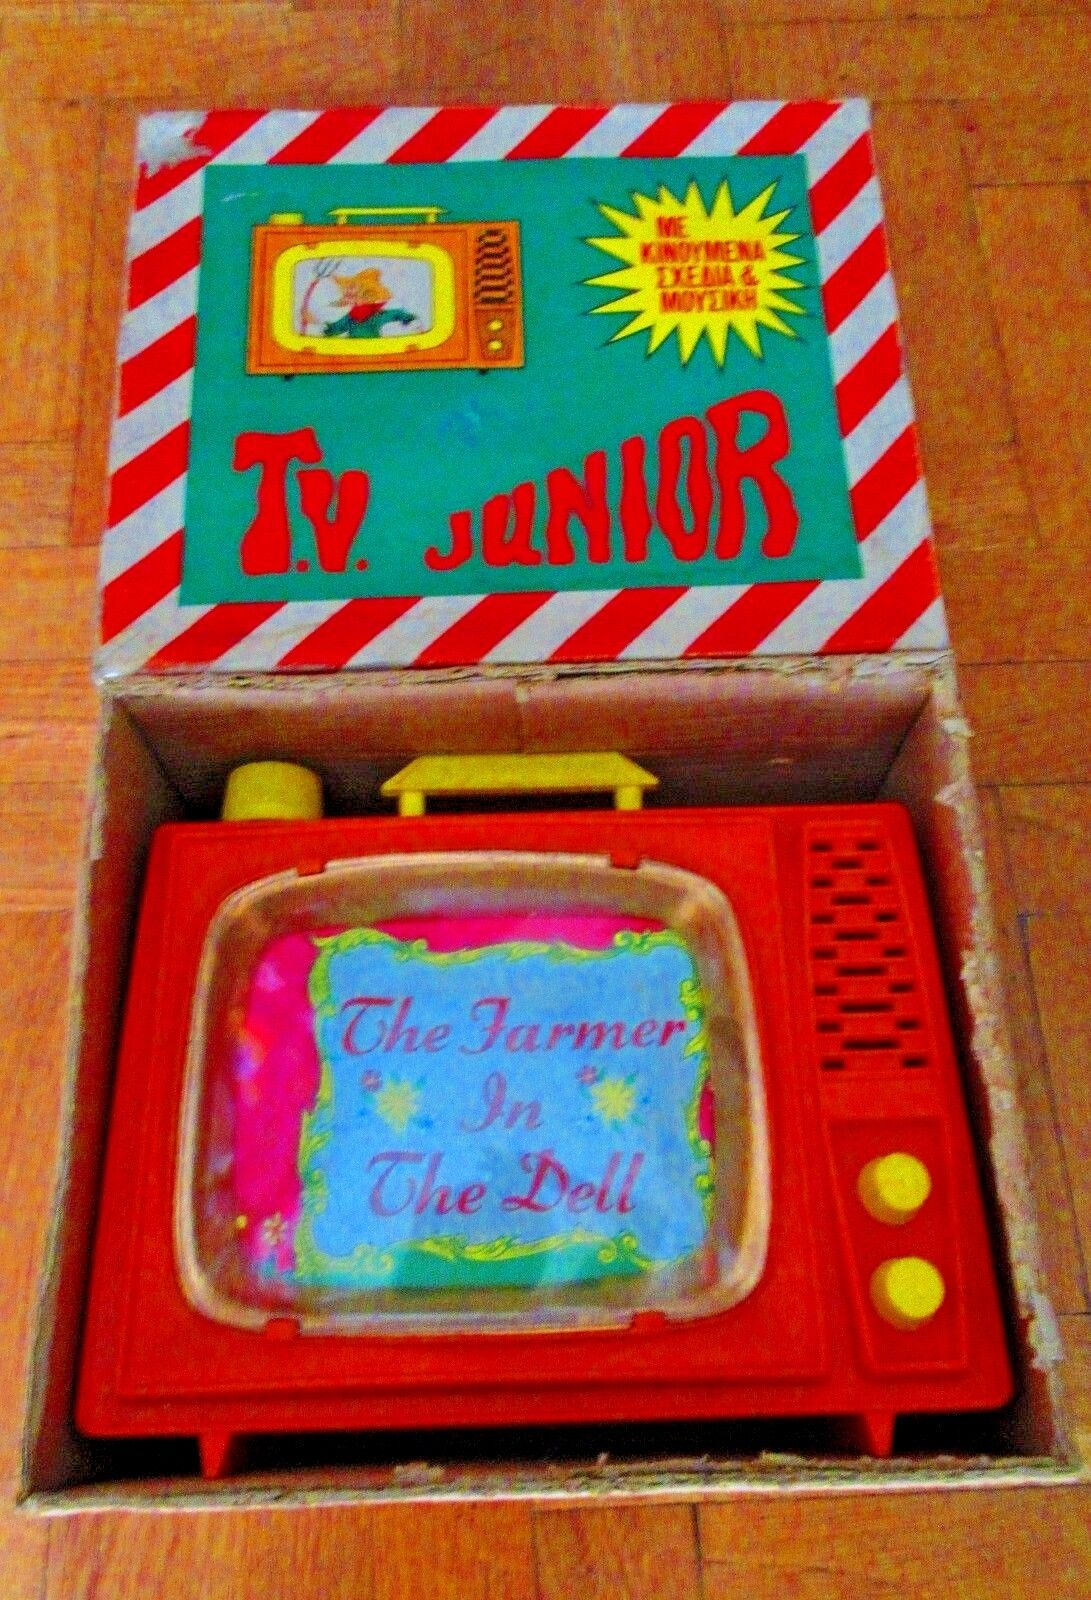 VINTAGE RARE GREEK TV JUNIOR FAIRY TAIL STORY & MUSIC BOX PENNY TOY BY KM 70s